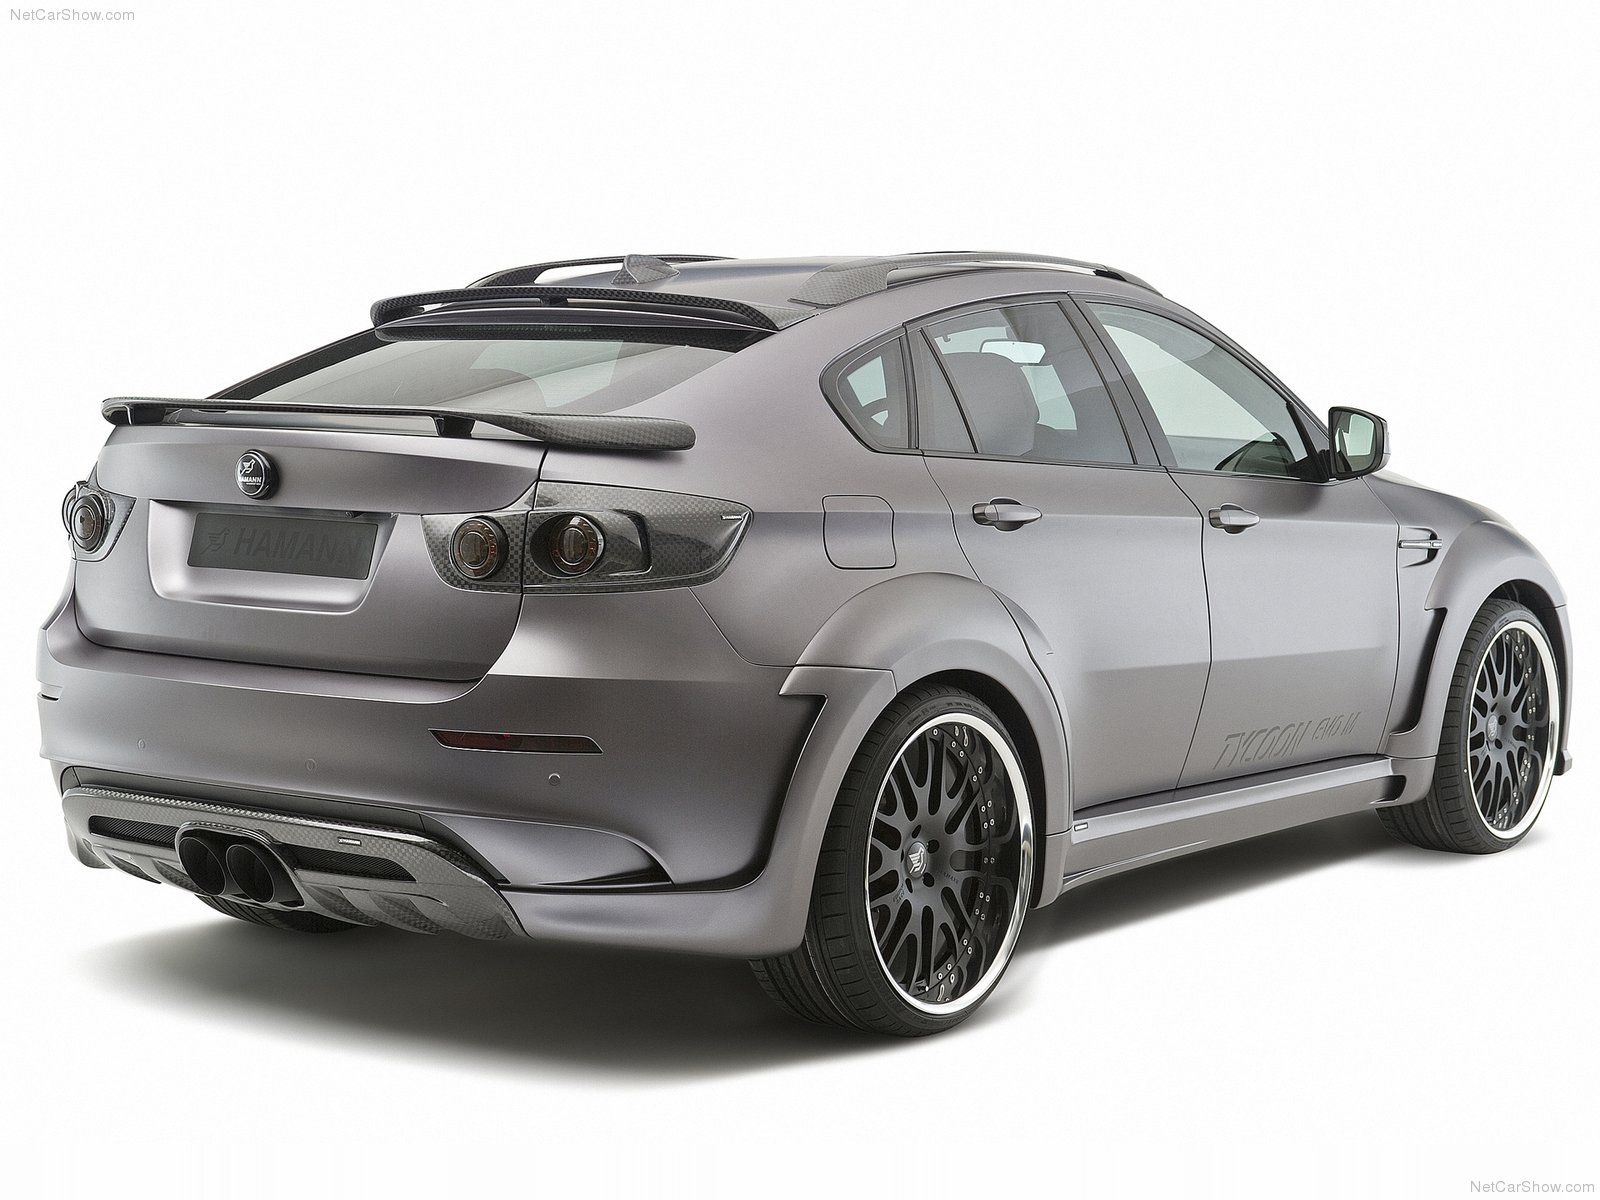 hamann bmw x6 tycoon evo m picture 79310 hamann photo. Black Bedroom Furniture Sets. Home Design Ideas